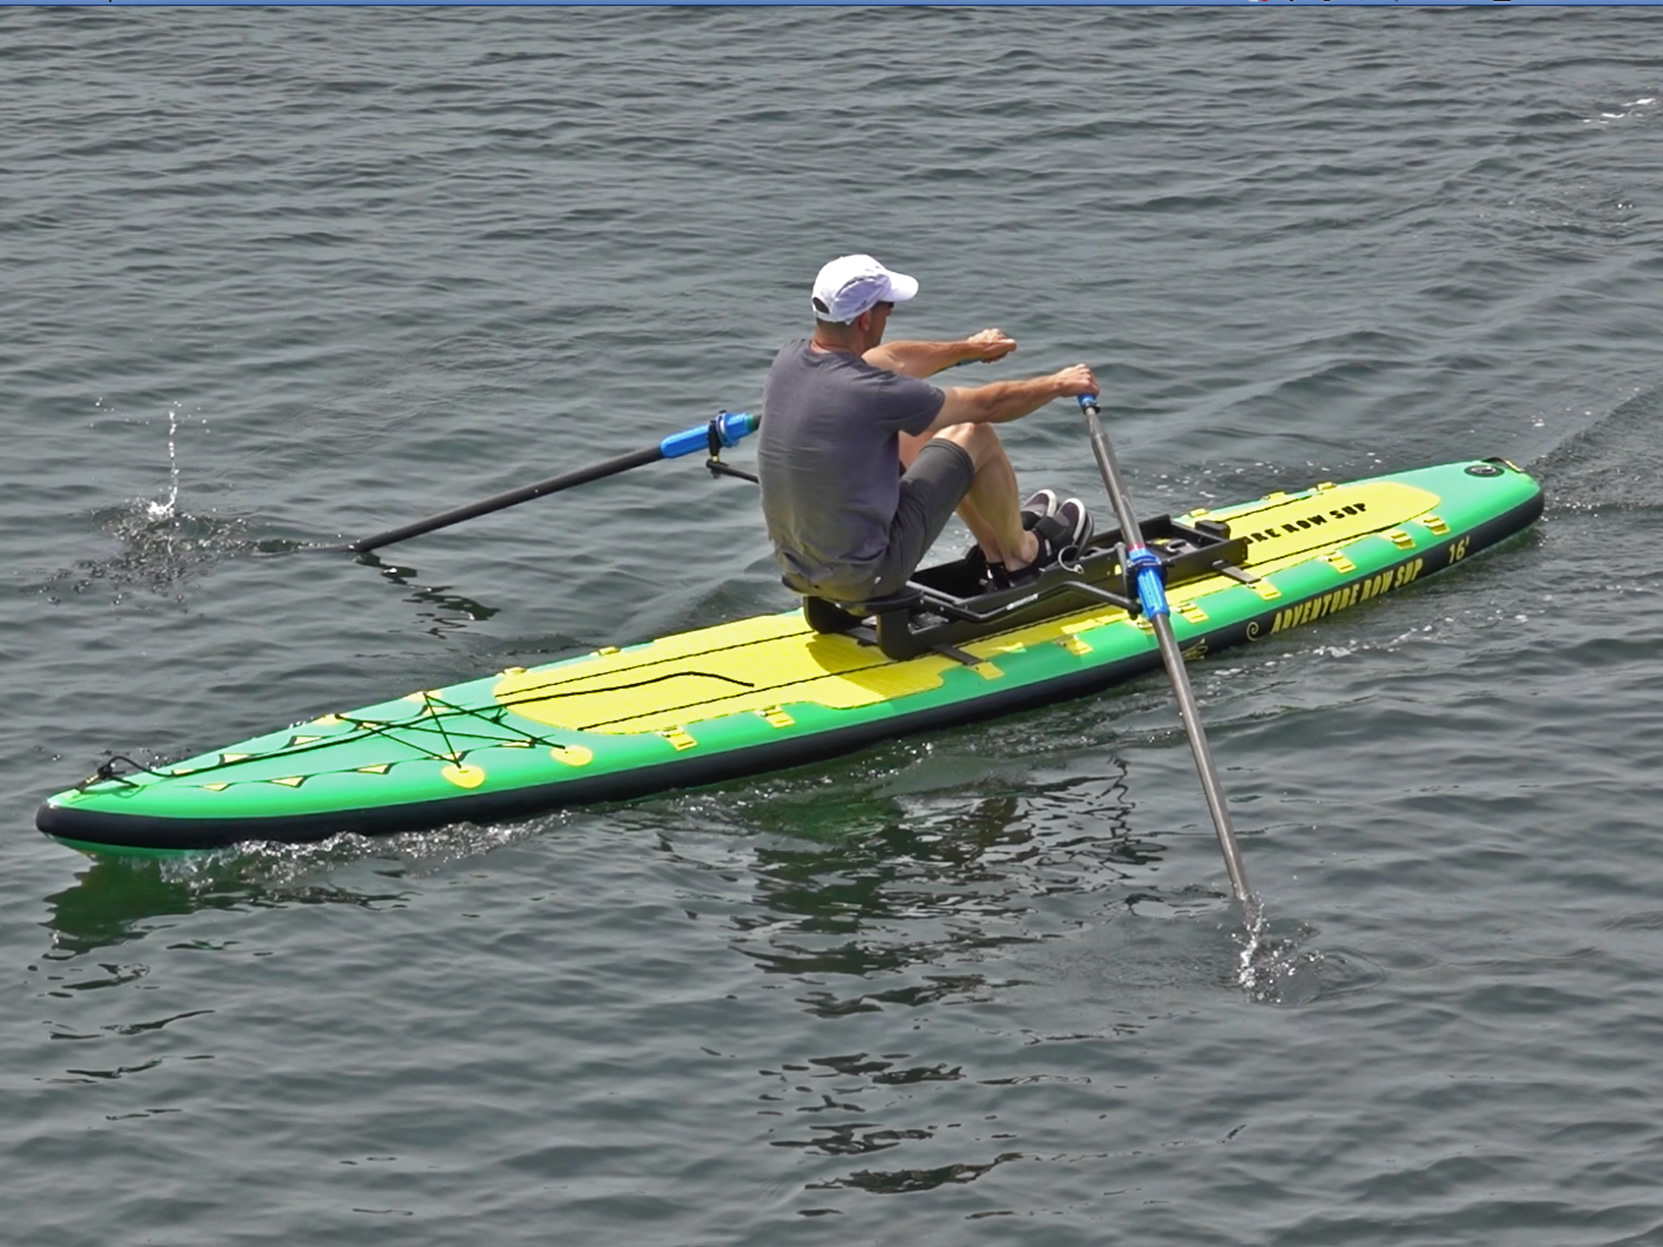 oar-board-stand-up-paddle-board-rower-whitehall-rowing-and-sail-Peter-ADV-16-SUP